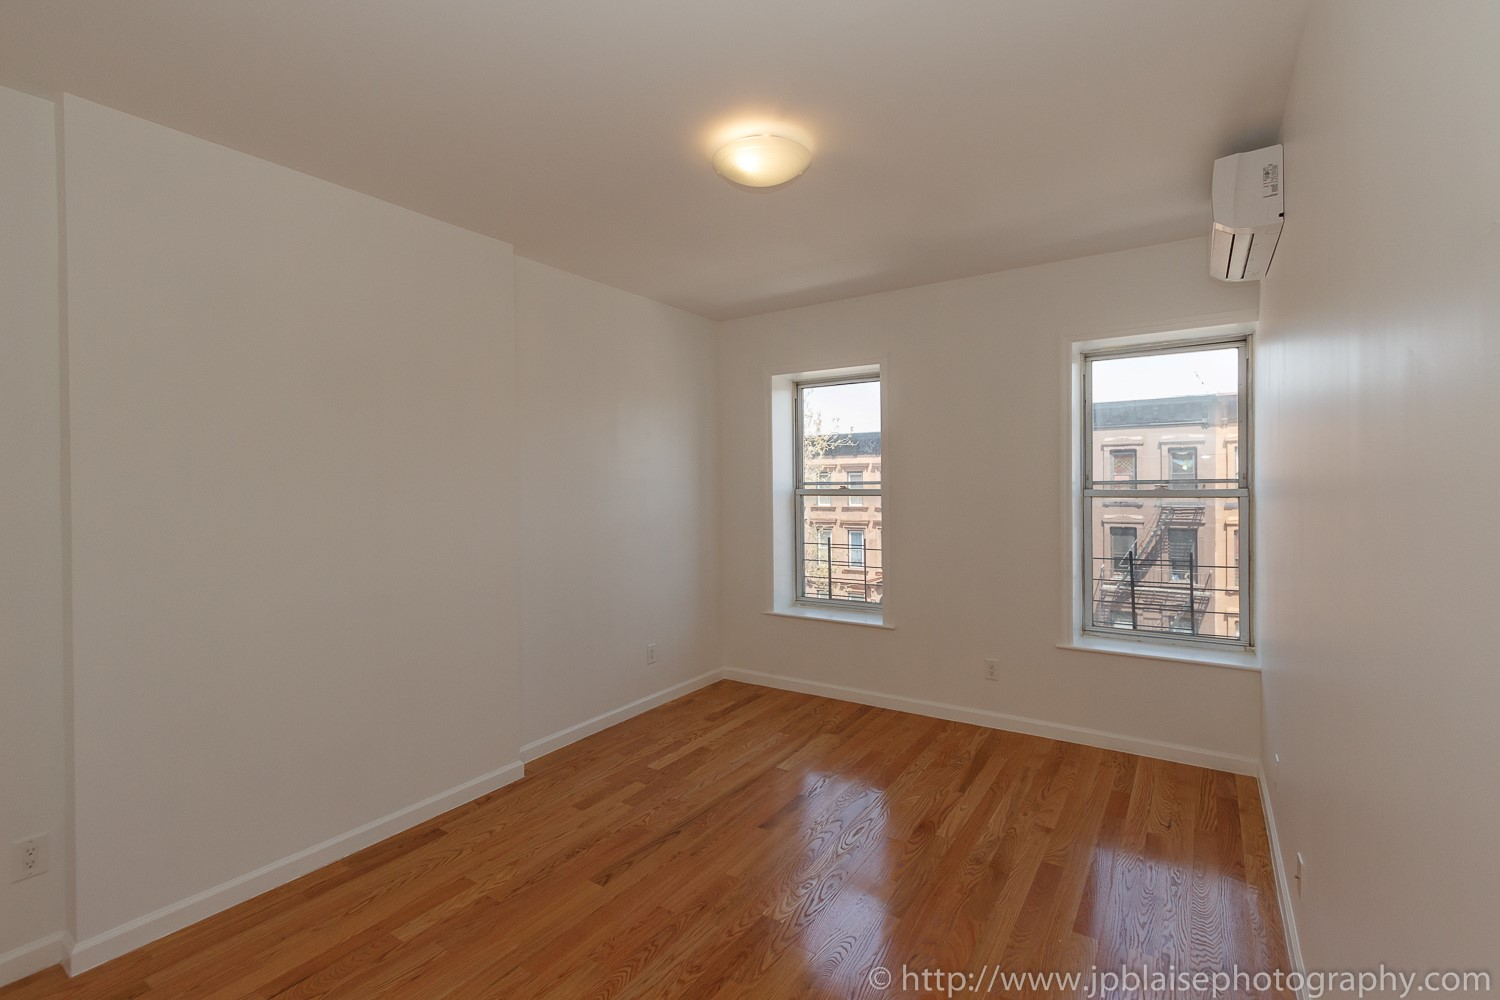 Bedroom one apartment photographer bedford stuyvesant apartment New York brooklyn photography